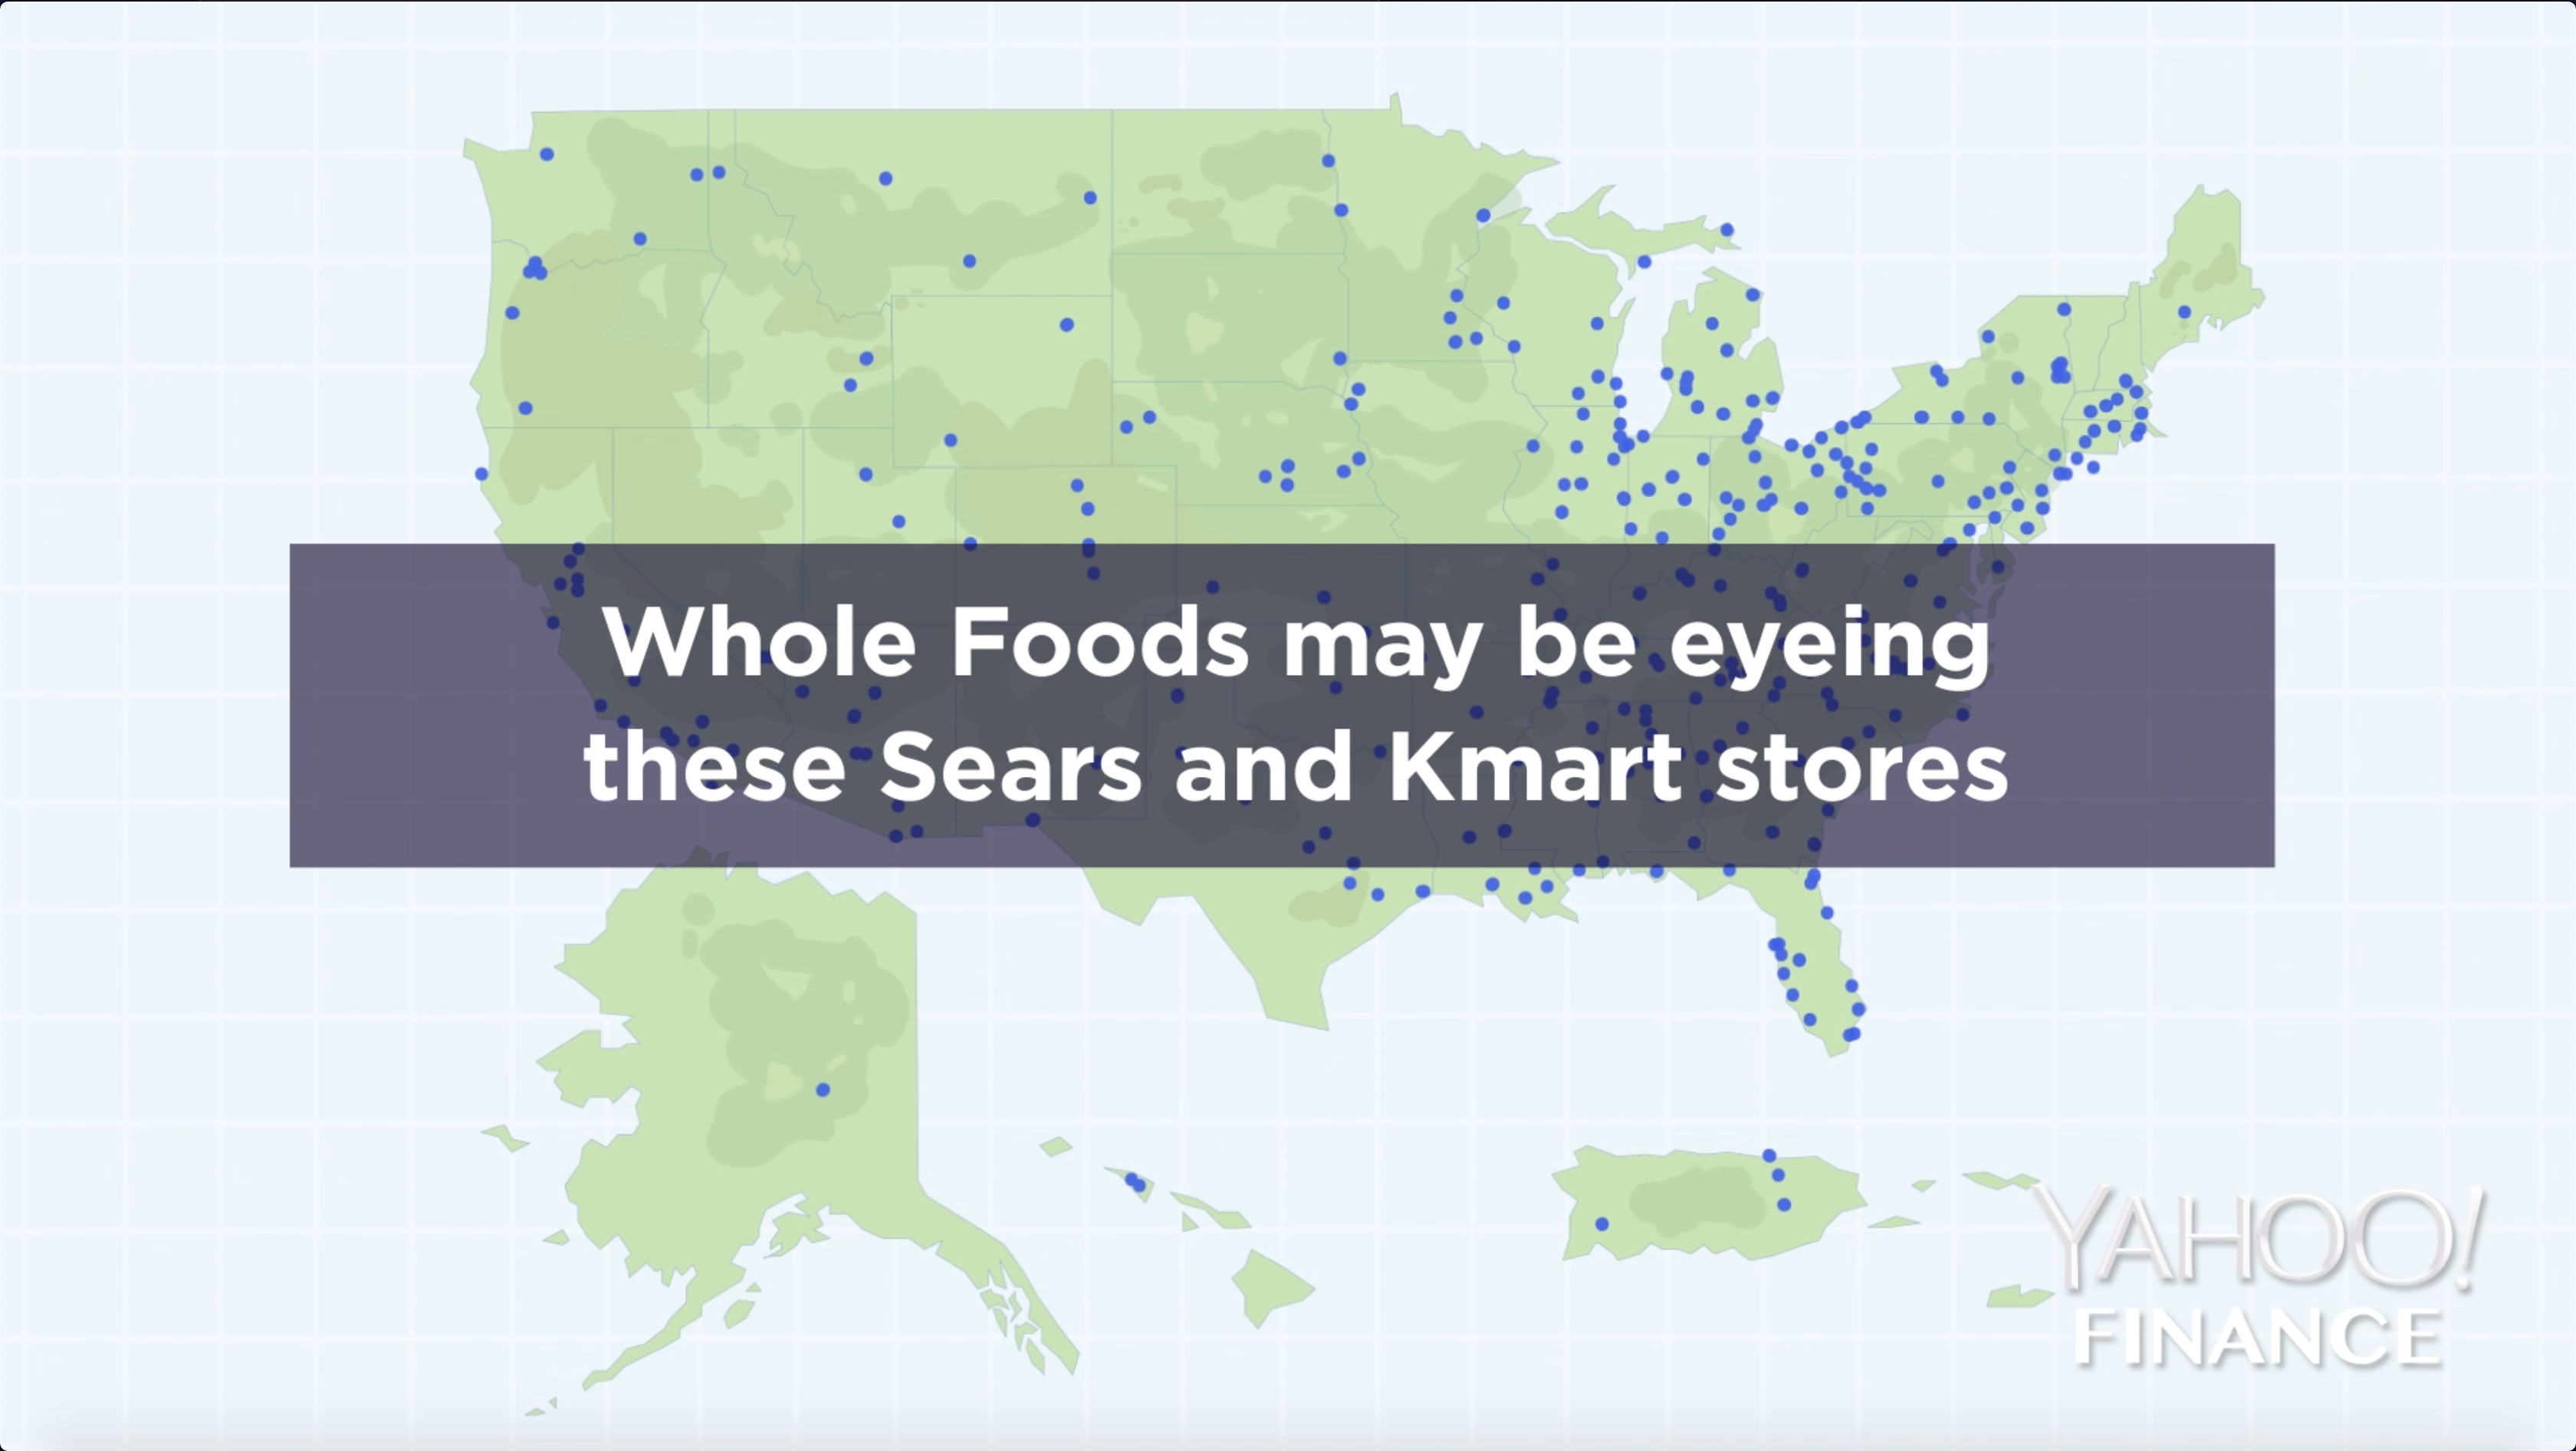 Whole foods may be eyeing these Sears and Kmart stores